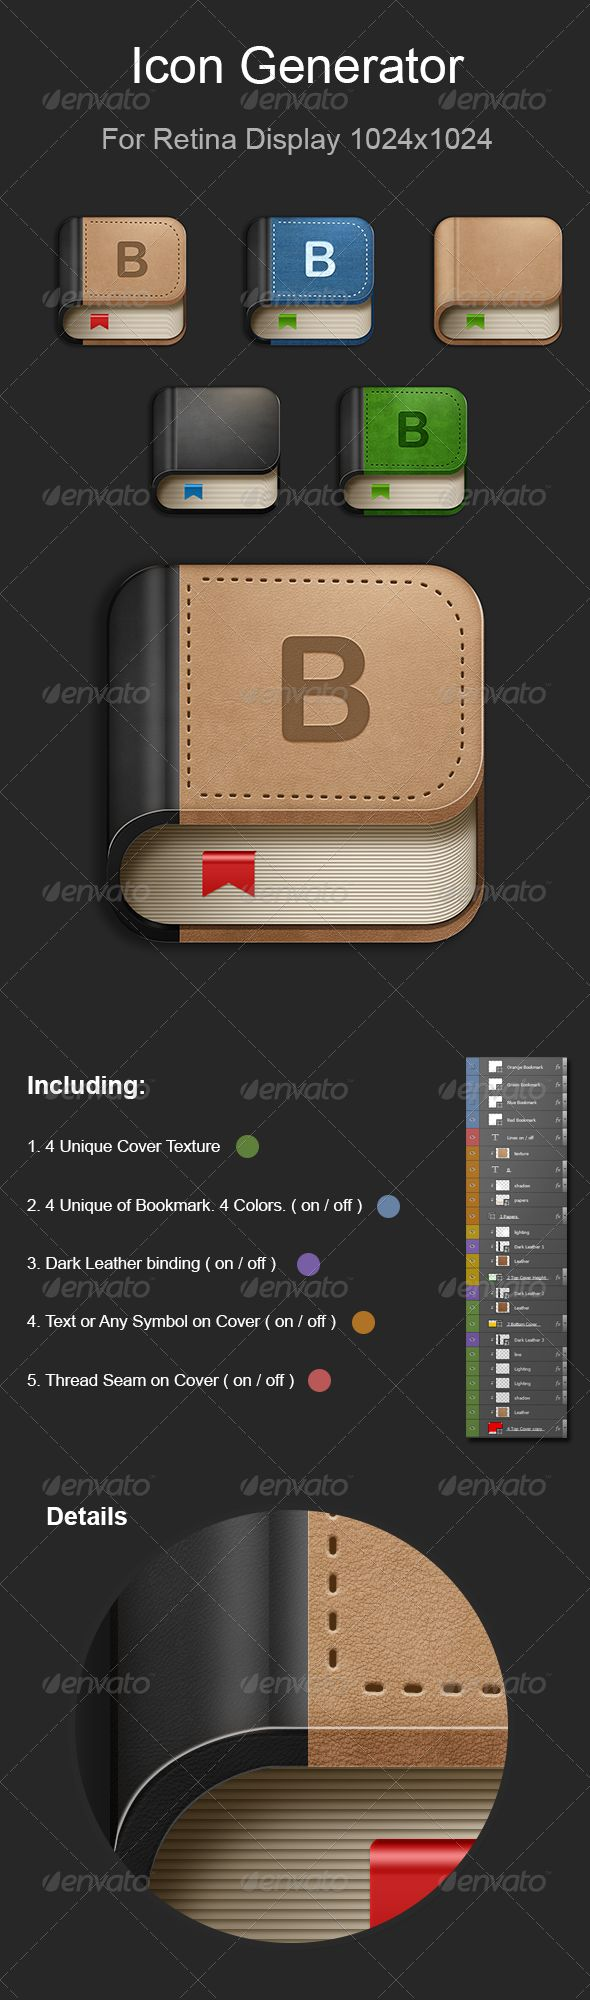 High Quality iOS Retina Book Icon Generator — Photoshop PSD #jeans #leather • Available here → https://graphicriver.net/item/high-quality-ios-retina-book-icon-generator/4466648?ref=pxcr